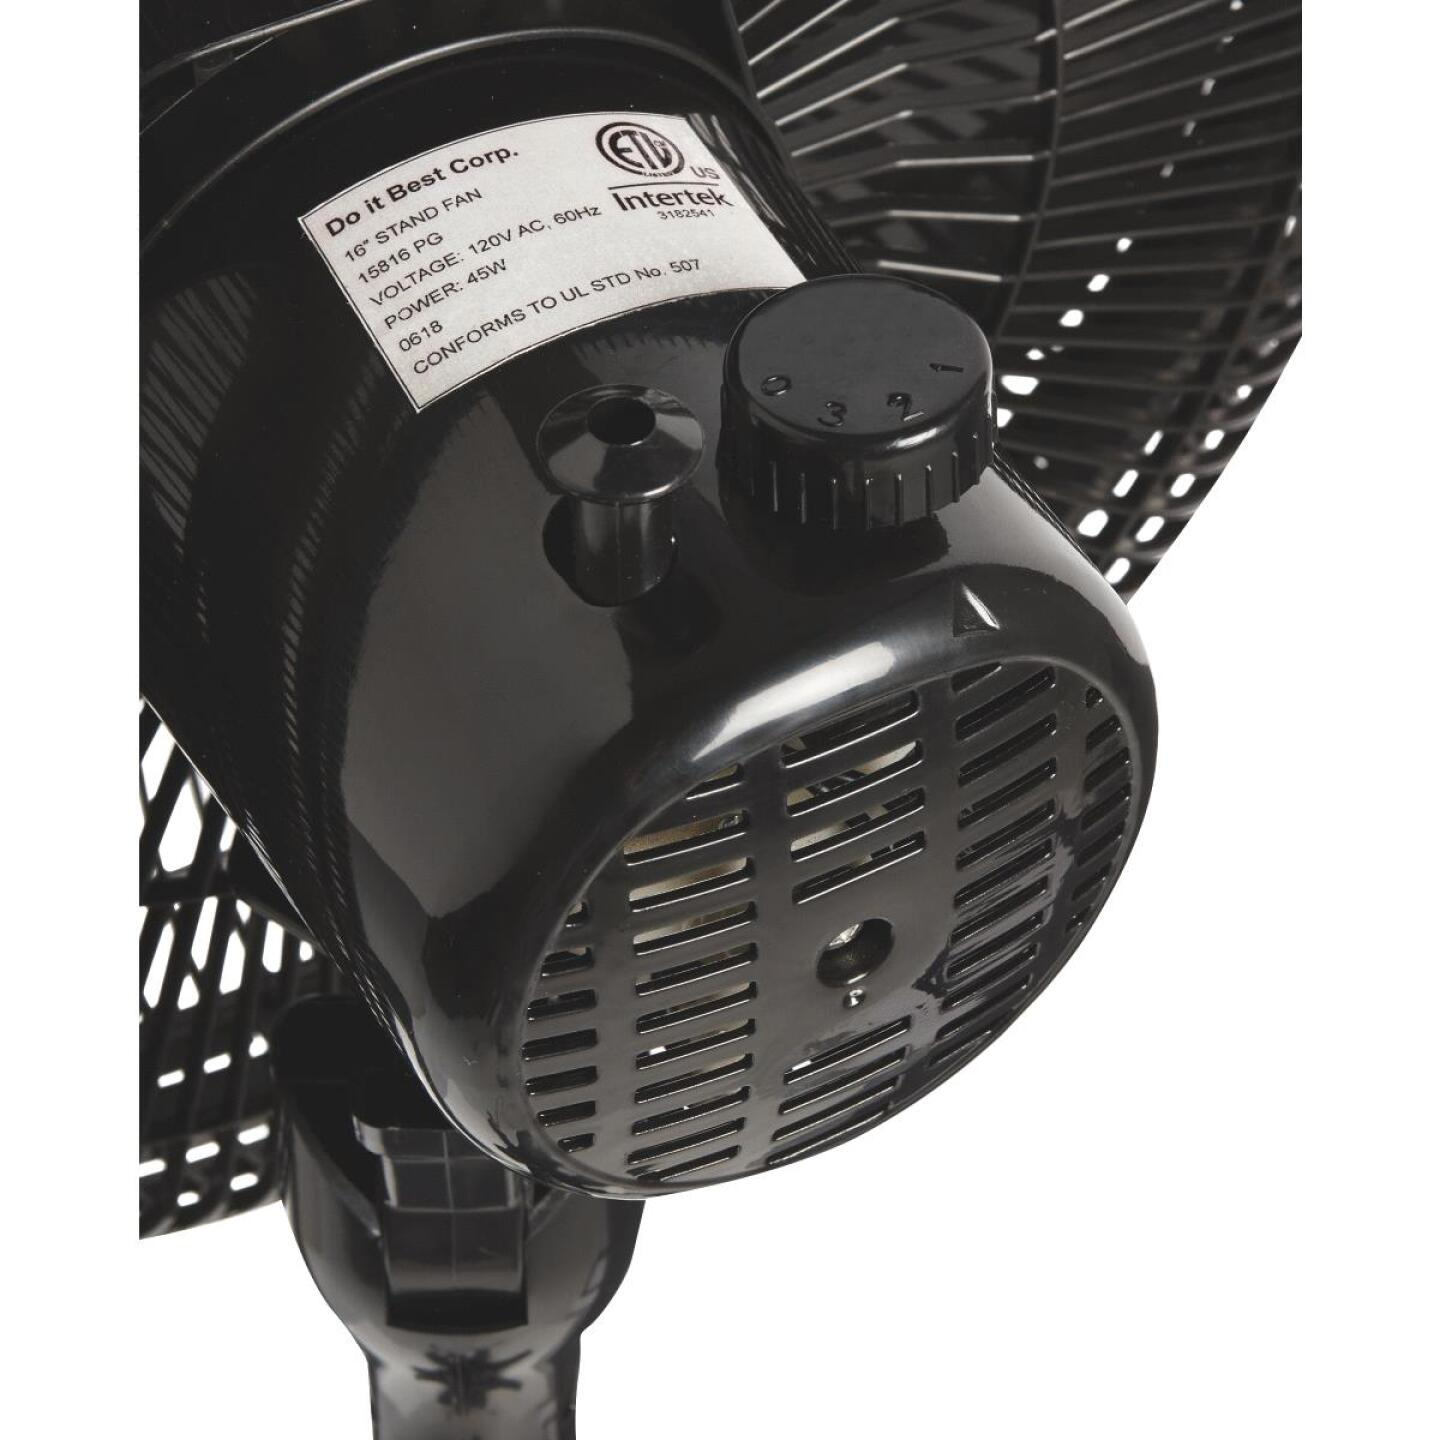 Best Comfort 16 In. 3-Speed 38 In. to 49 In. H. Black Oscillating Pedestal Fan Image 2